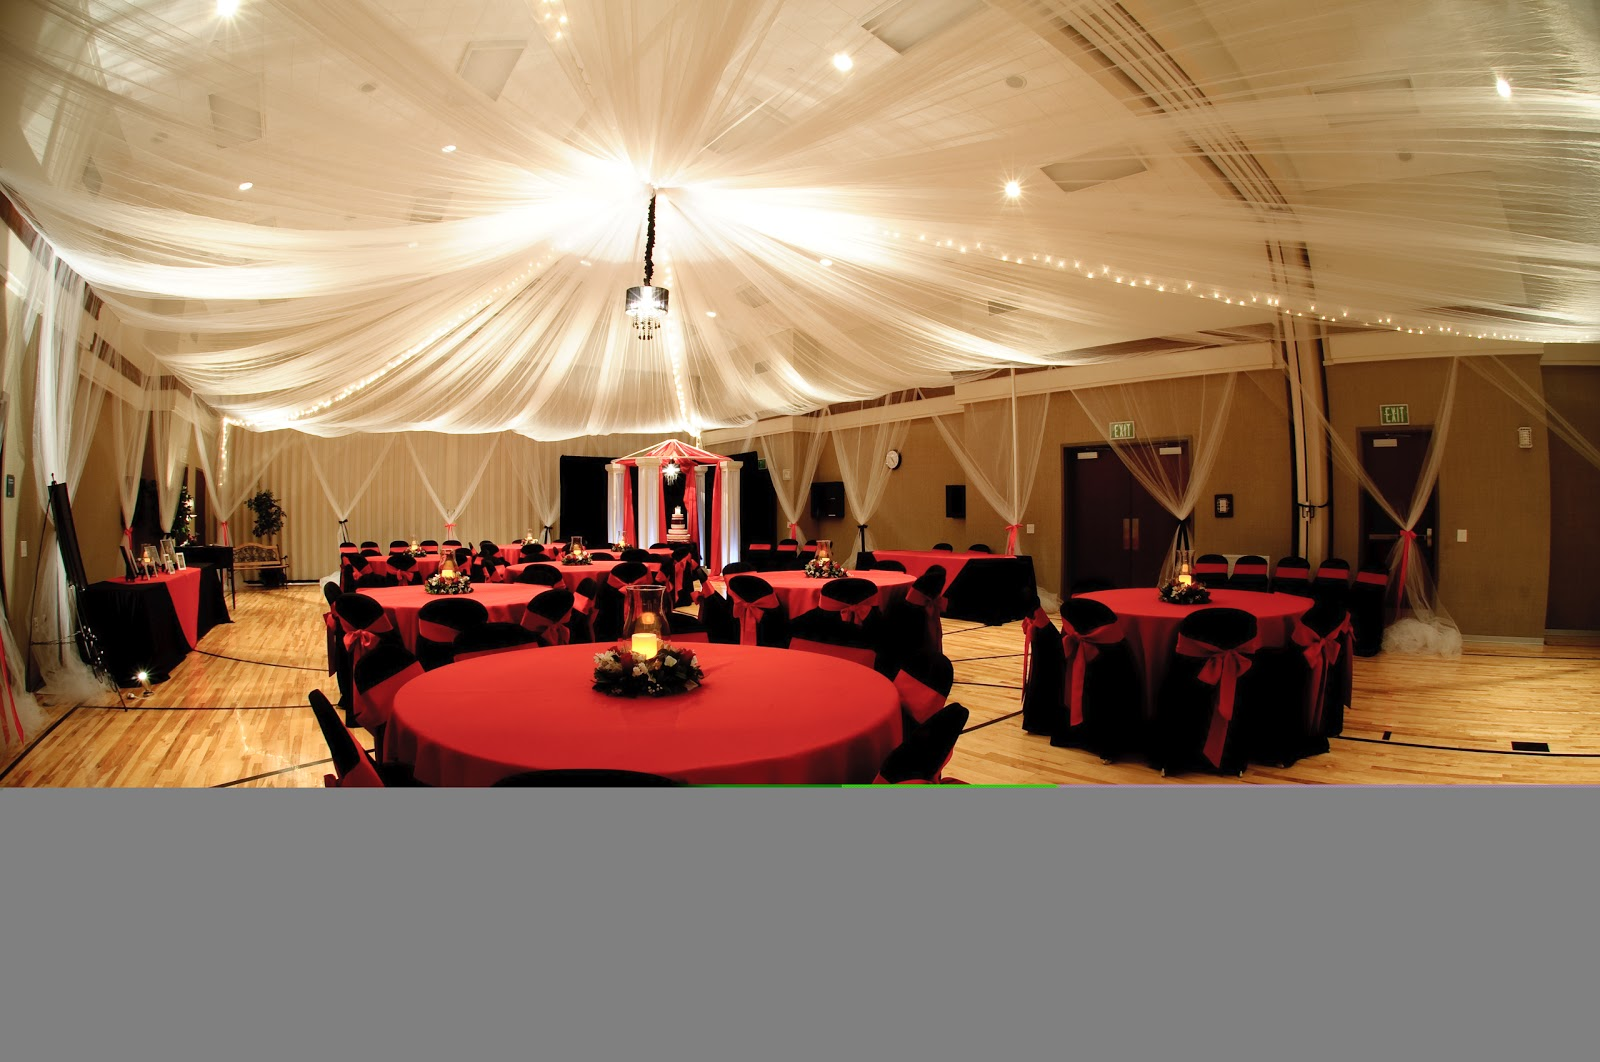 Wedding decoration wedding decorating ideas tulle ceiling for Wedding reception decoration ideas